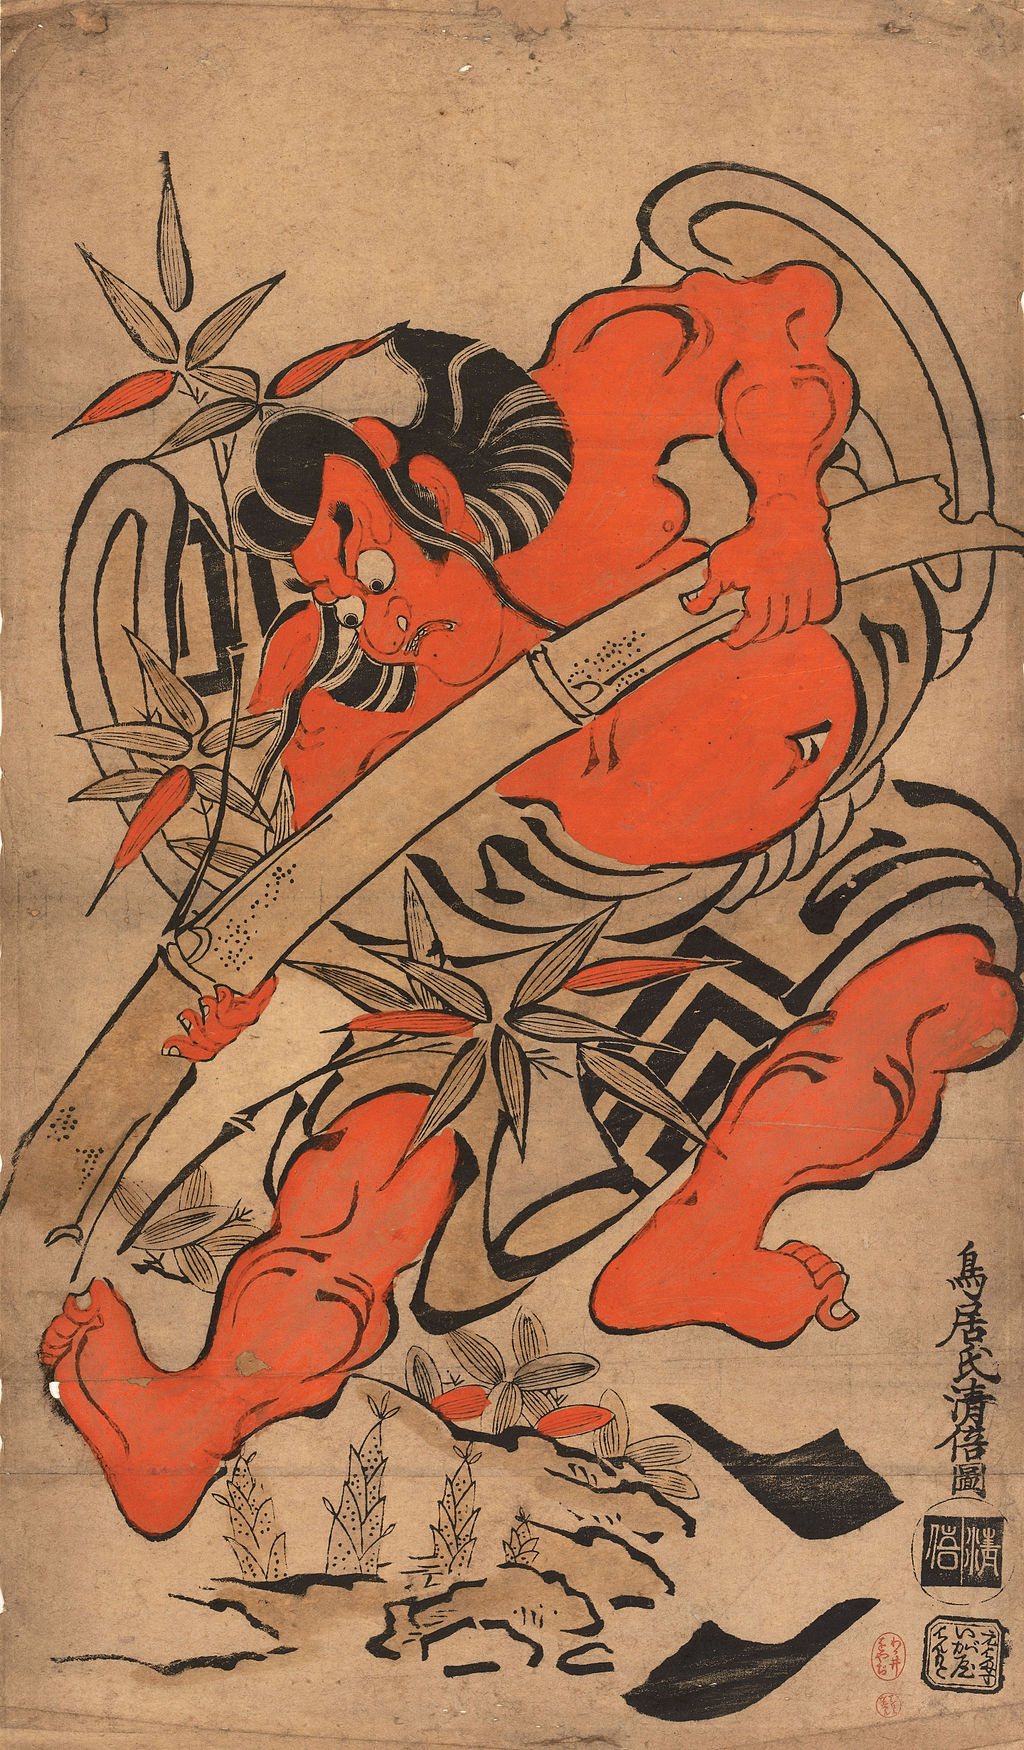 Japanese Woodblock Prints - History, Technique, and More